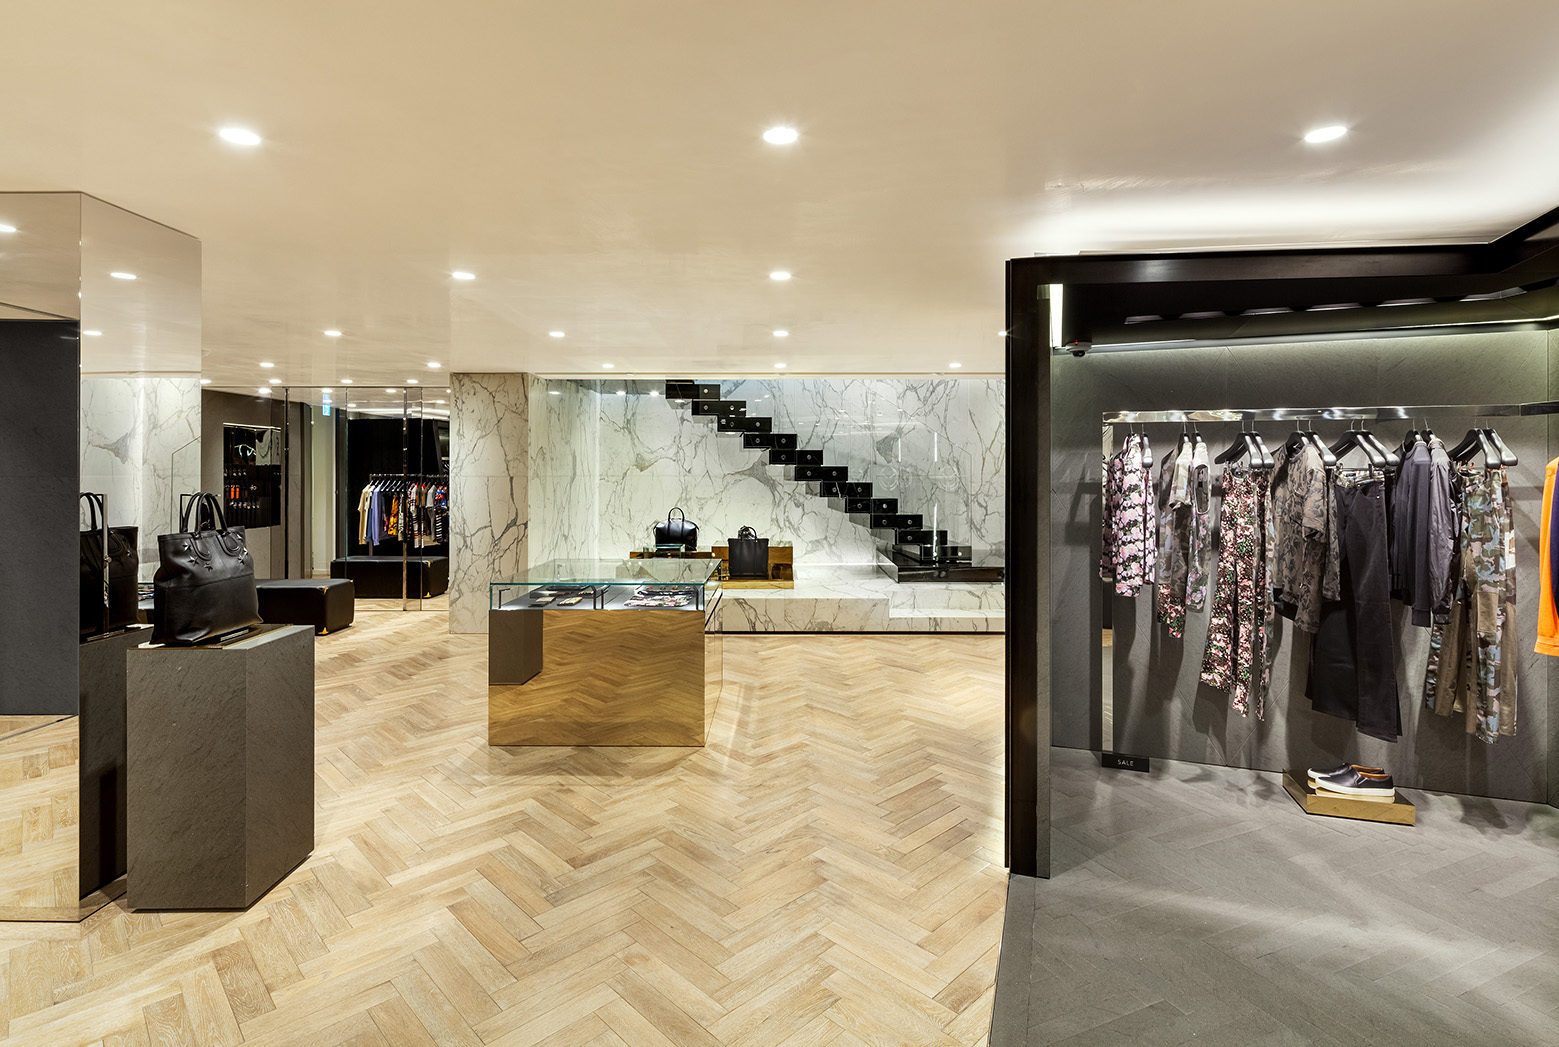 givenchy-flagship-store-in-seoul-piuarch-07